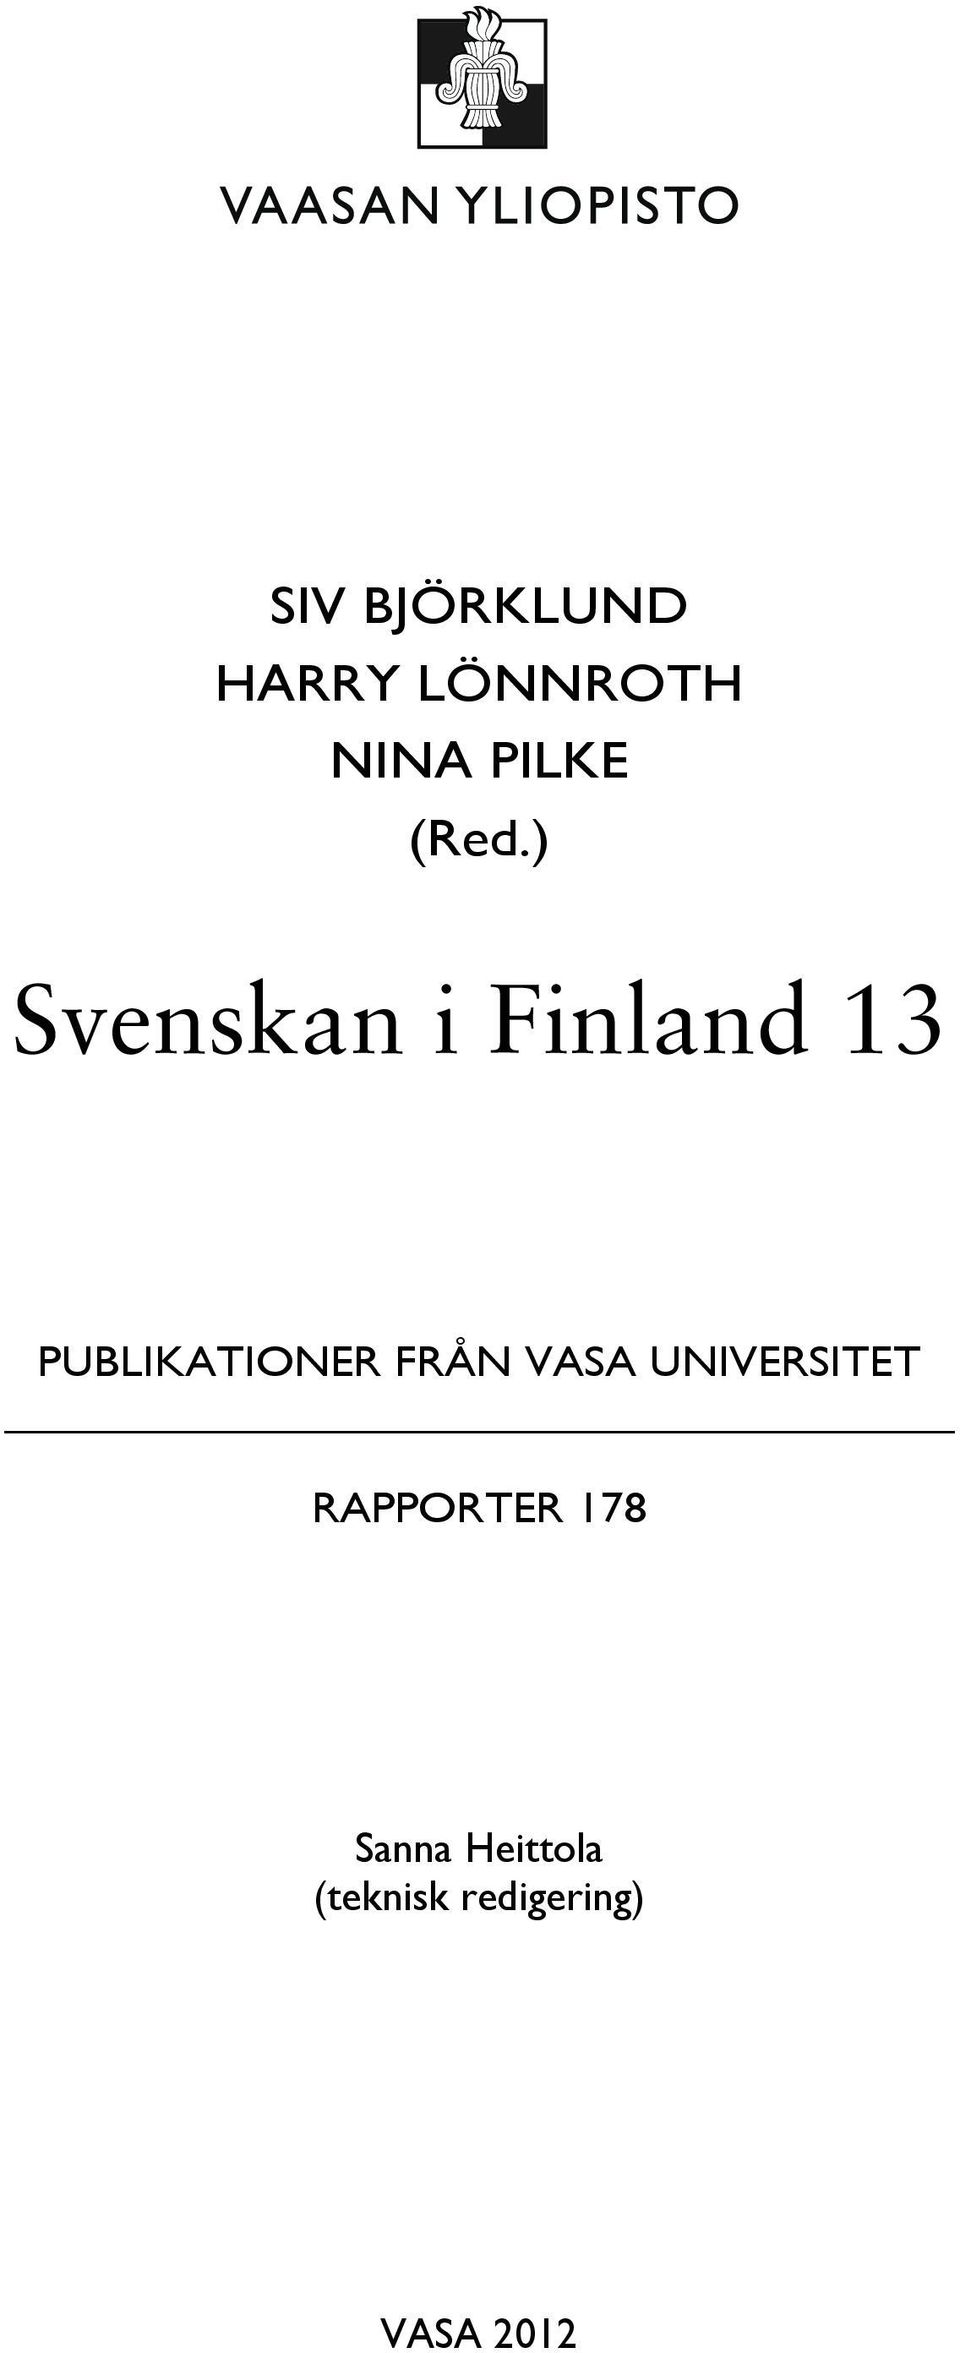 PUBLIKATIONER FRÅN VASA UNIVERSITET